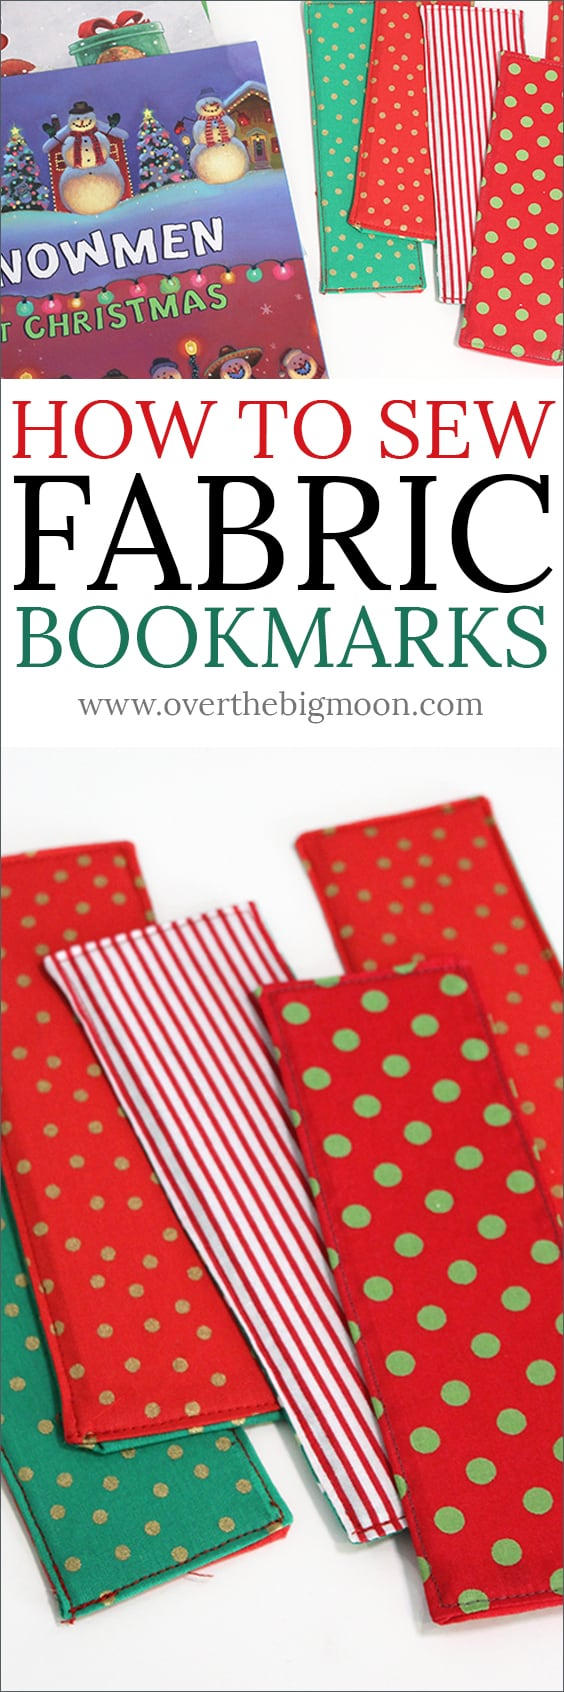 How to Sew Fabric Bookmarks - perfect craft for kids! And you can make them for every season or holiday! My kids are giving them to their friends with a Christmas book this year! Full tutorial at www.overthebigmoon.com!